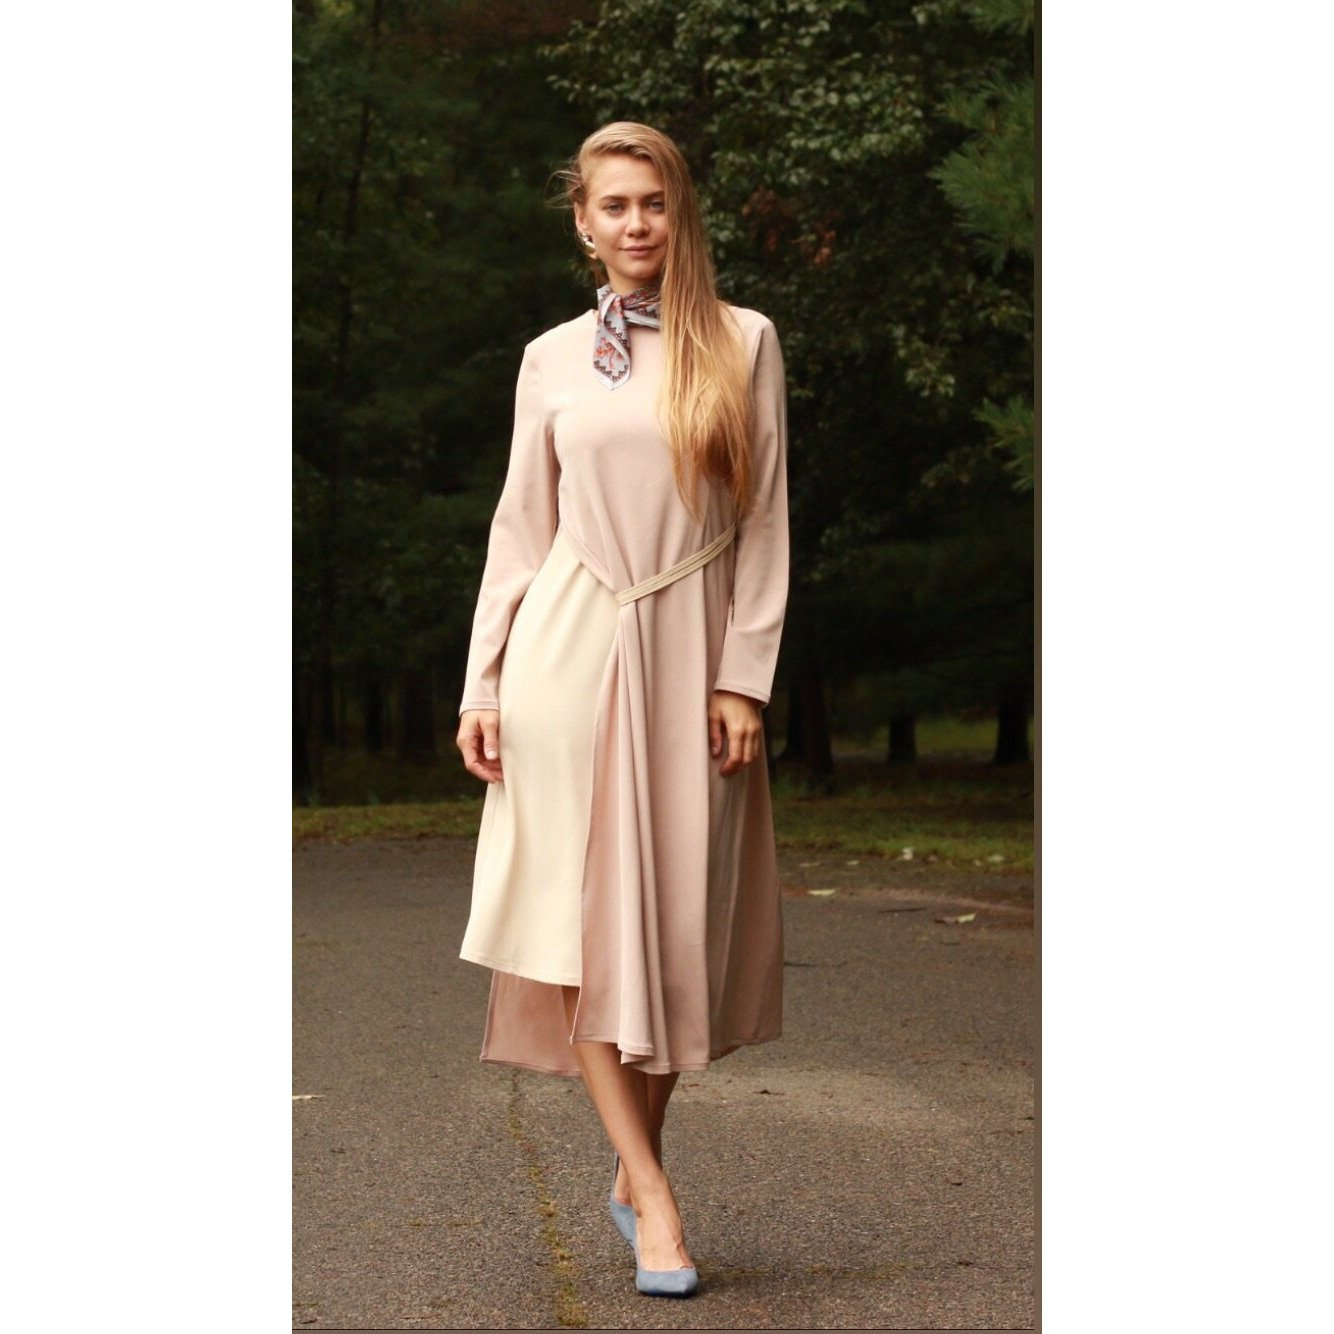 Ladies Pale Pink Dress 11390 - Modest Necessities